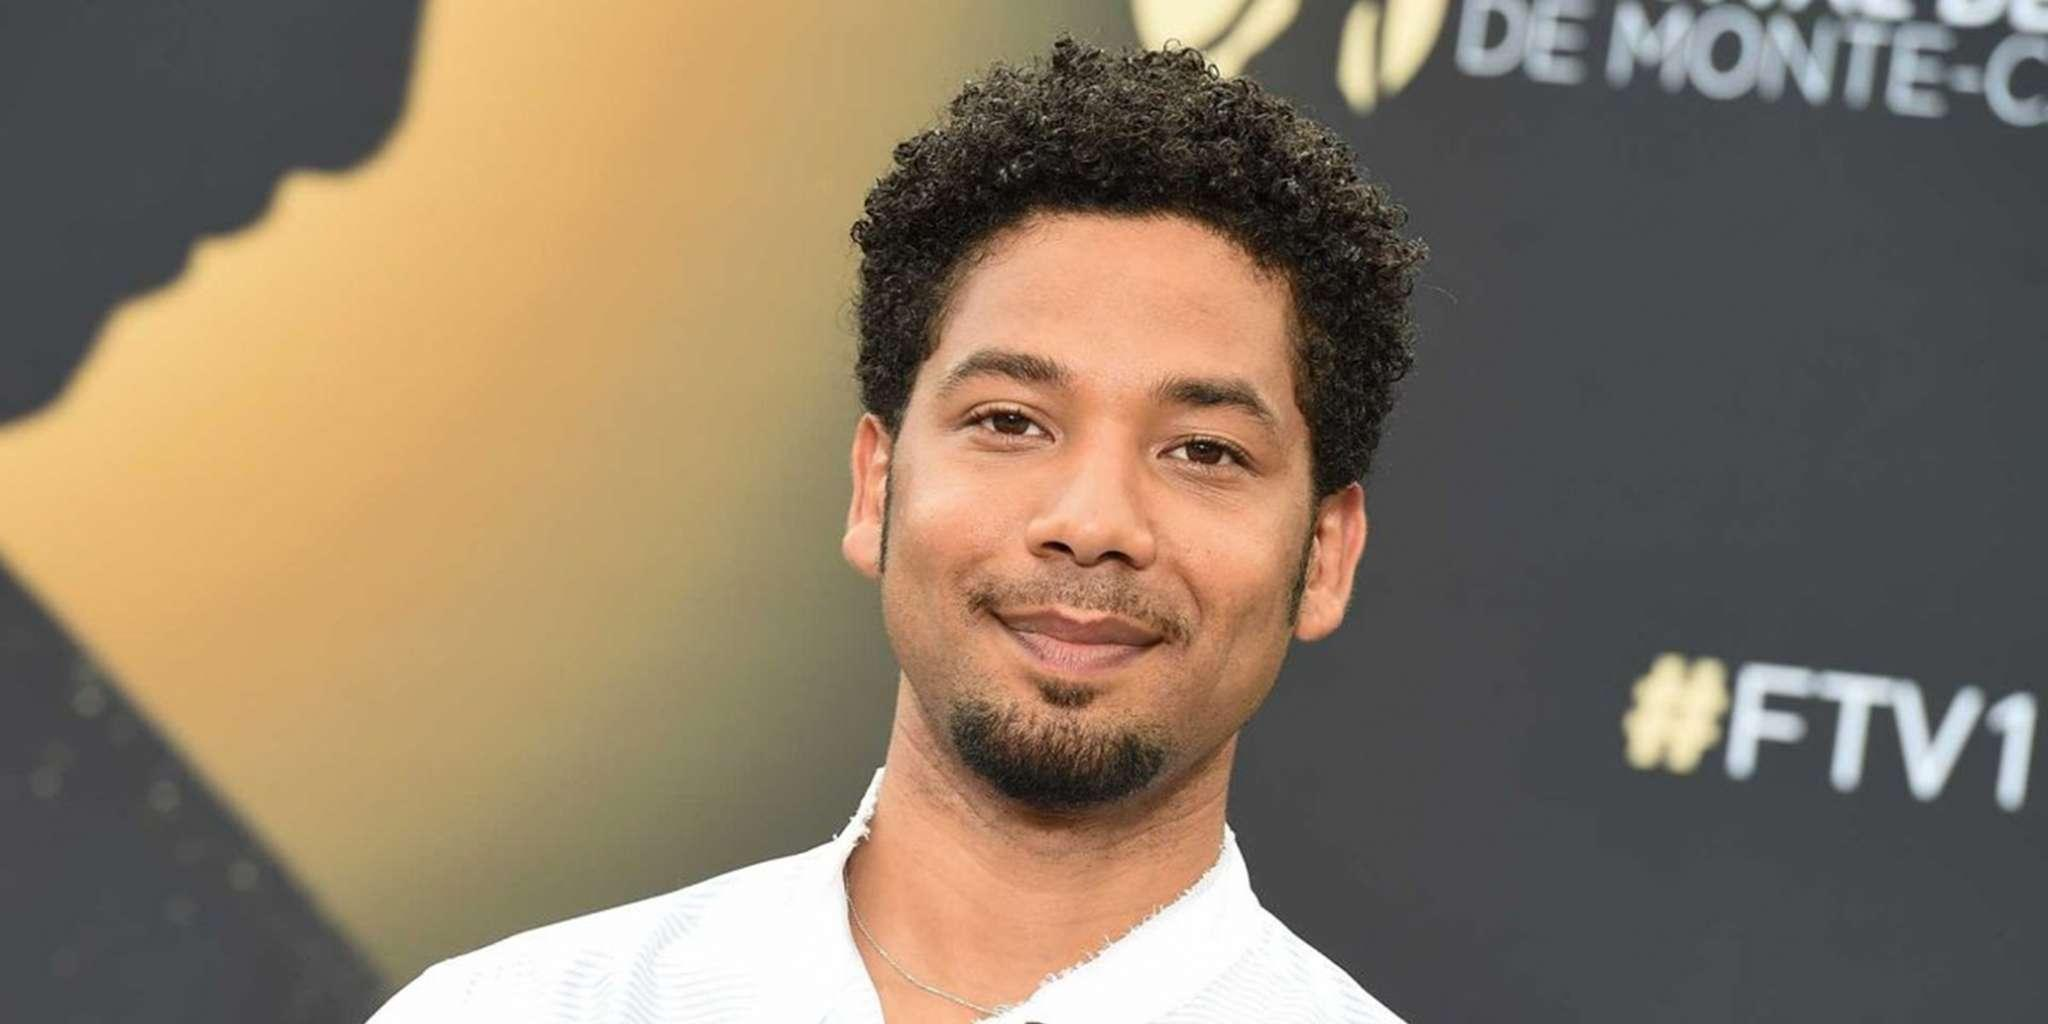 Jussie Smollett Claims He Is Telling The Truth About Homophobic And Racist Attack Despite What Critics Say